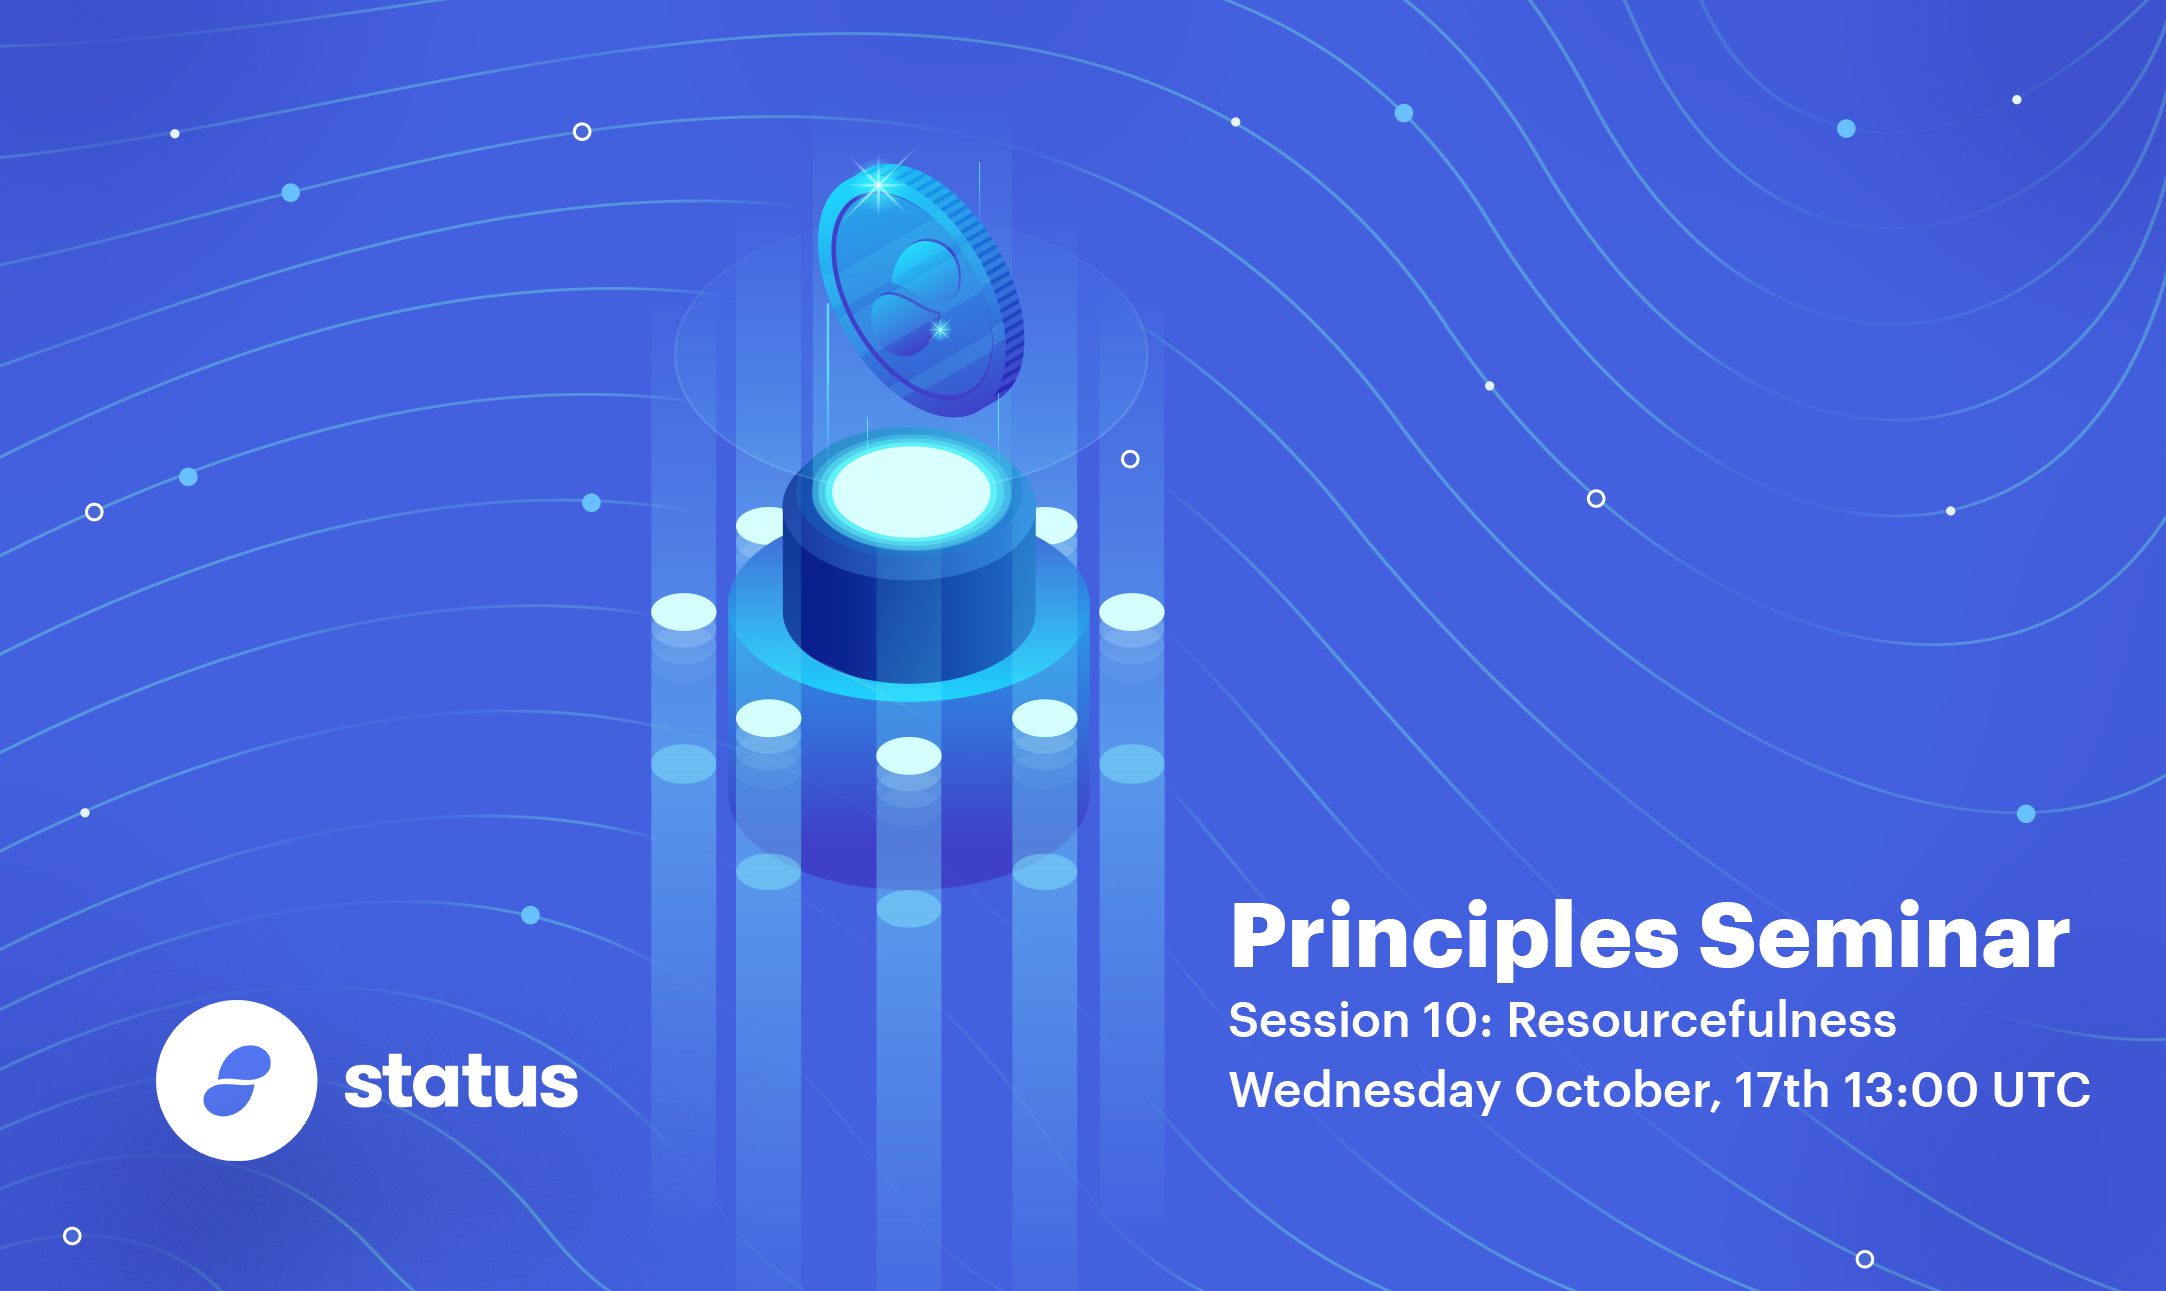 Principles Seminar - Session 10: Resourcefulness